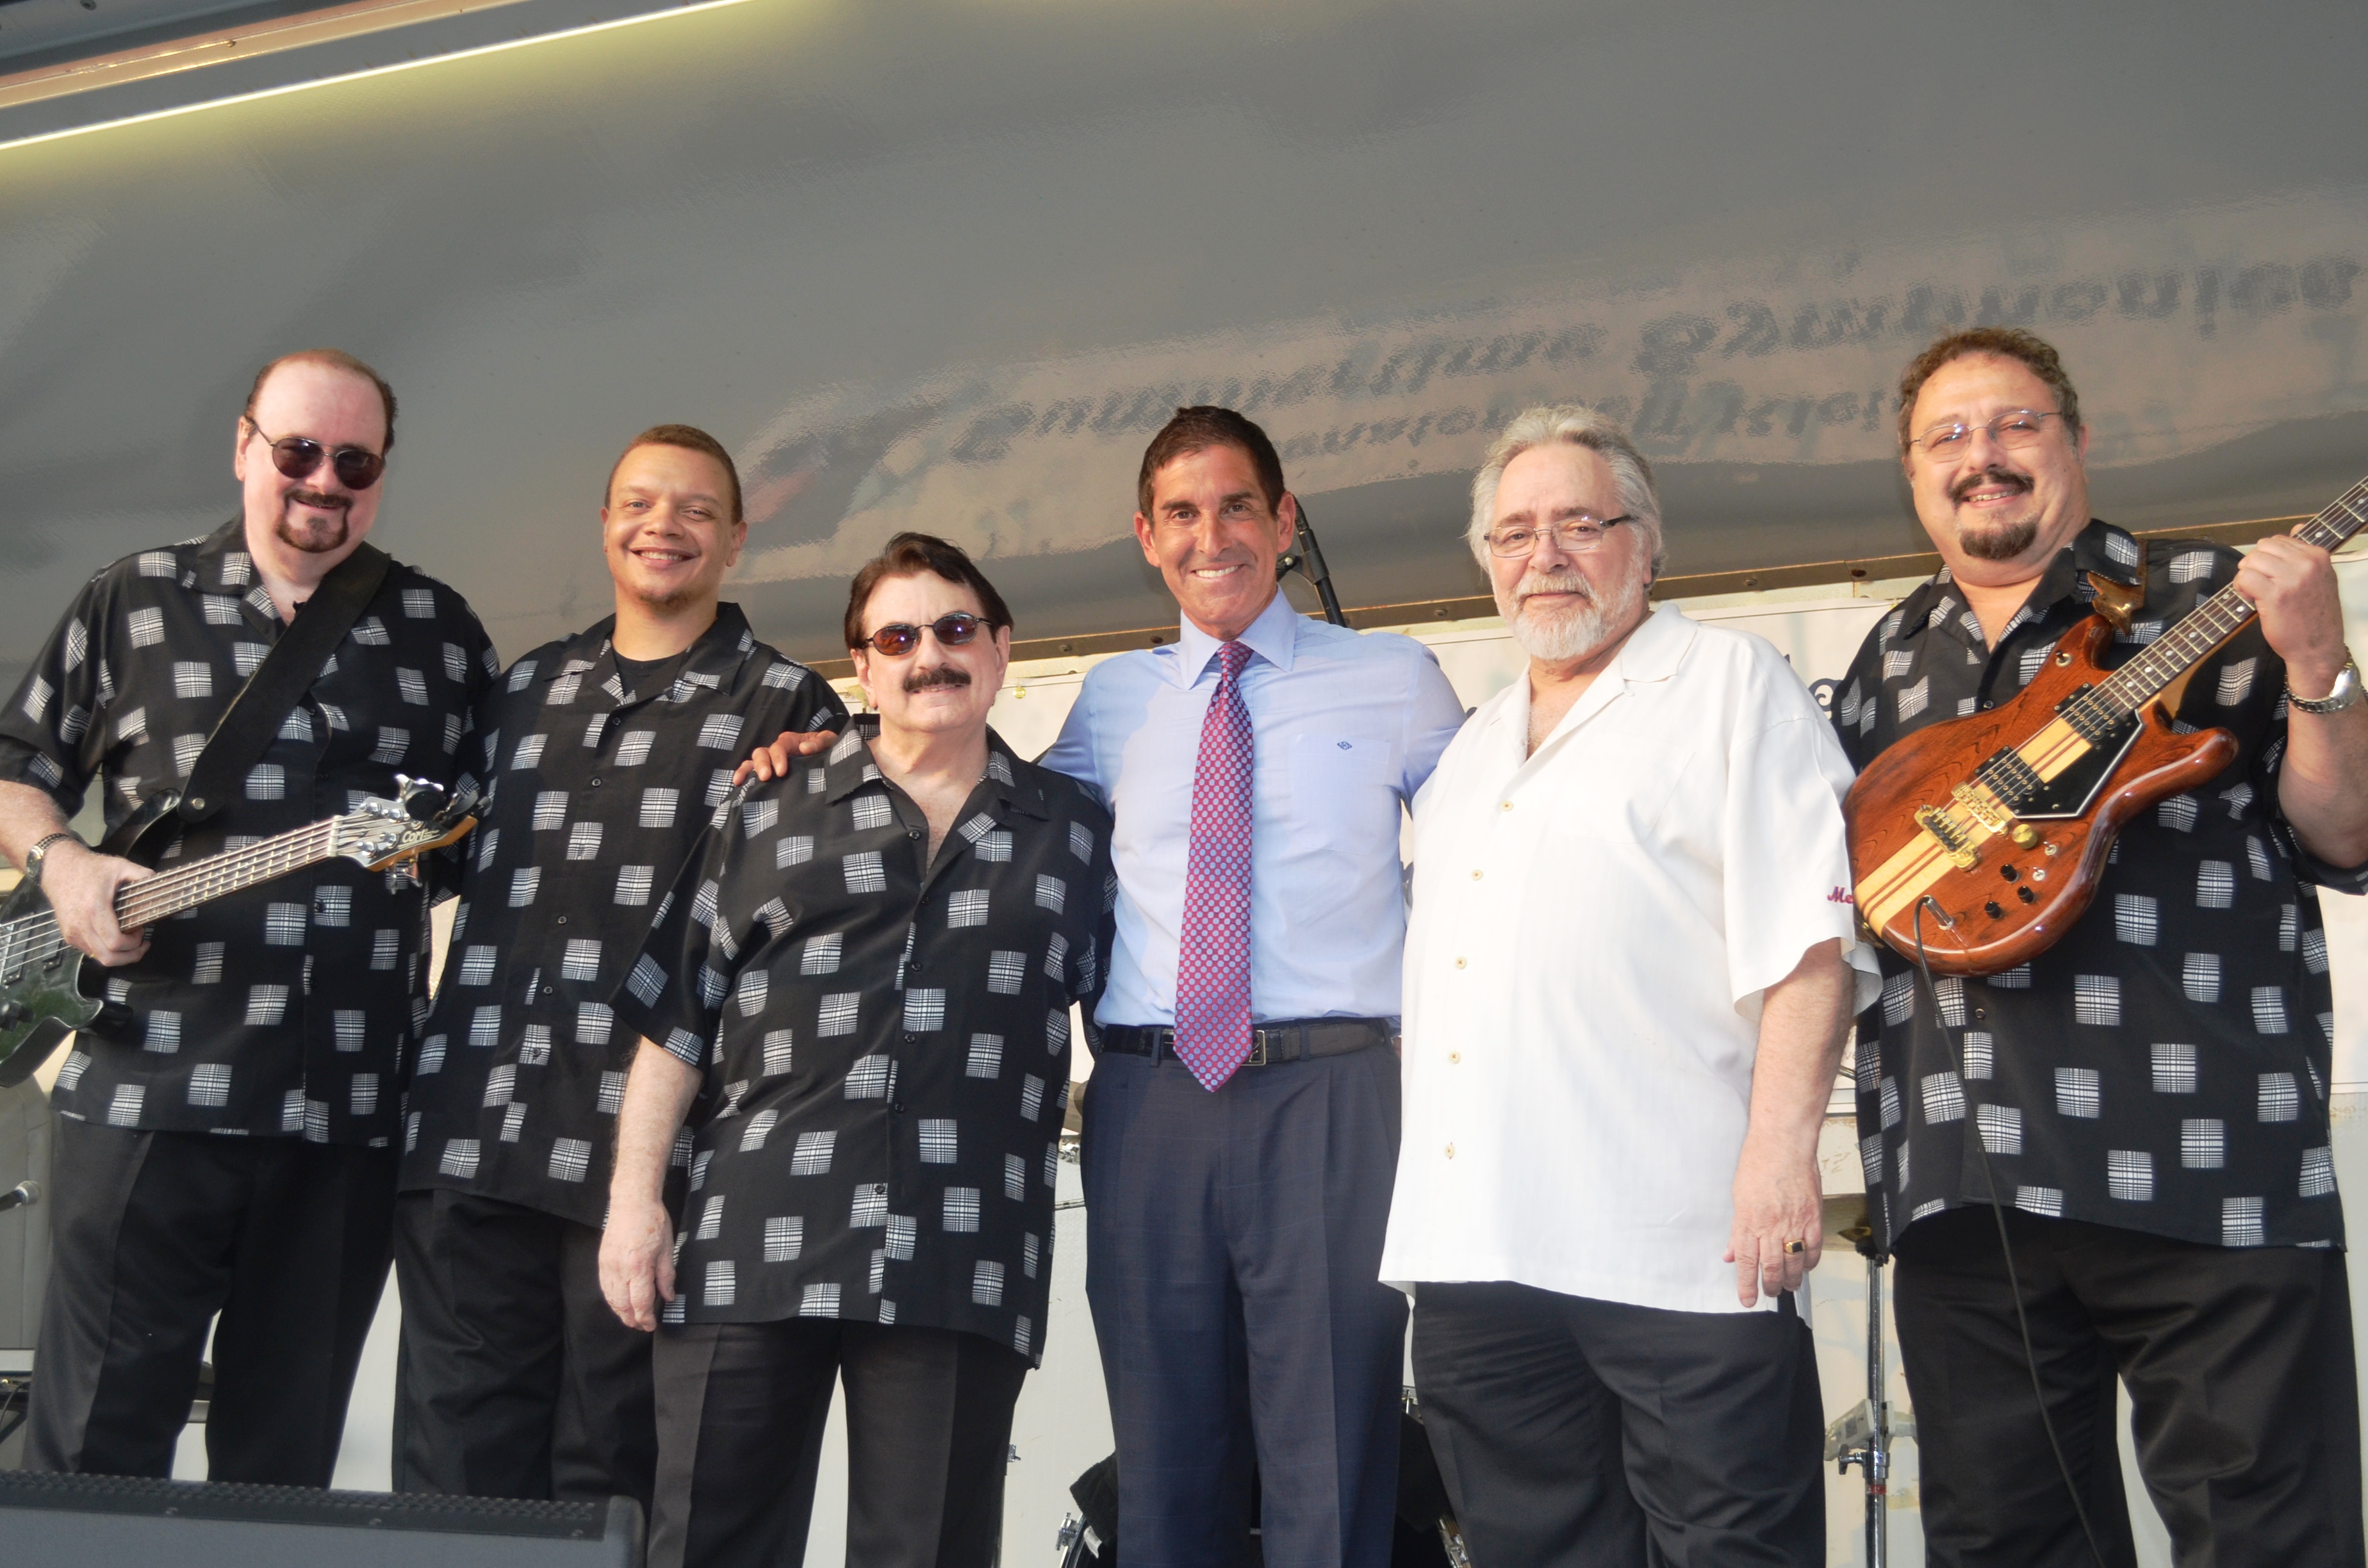 enator Jeff Klein hosts Larry Chance & The Earls at Bufano Park on Aug. 19 as part of his Summertime Symphonies Series.